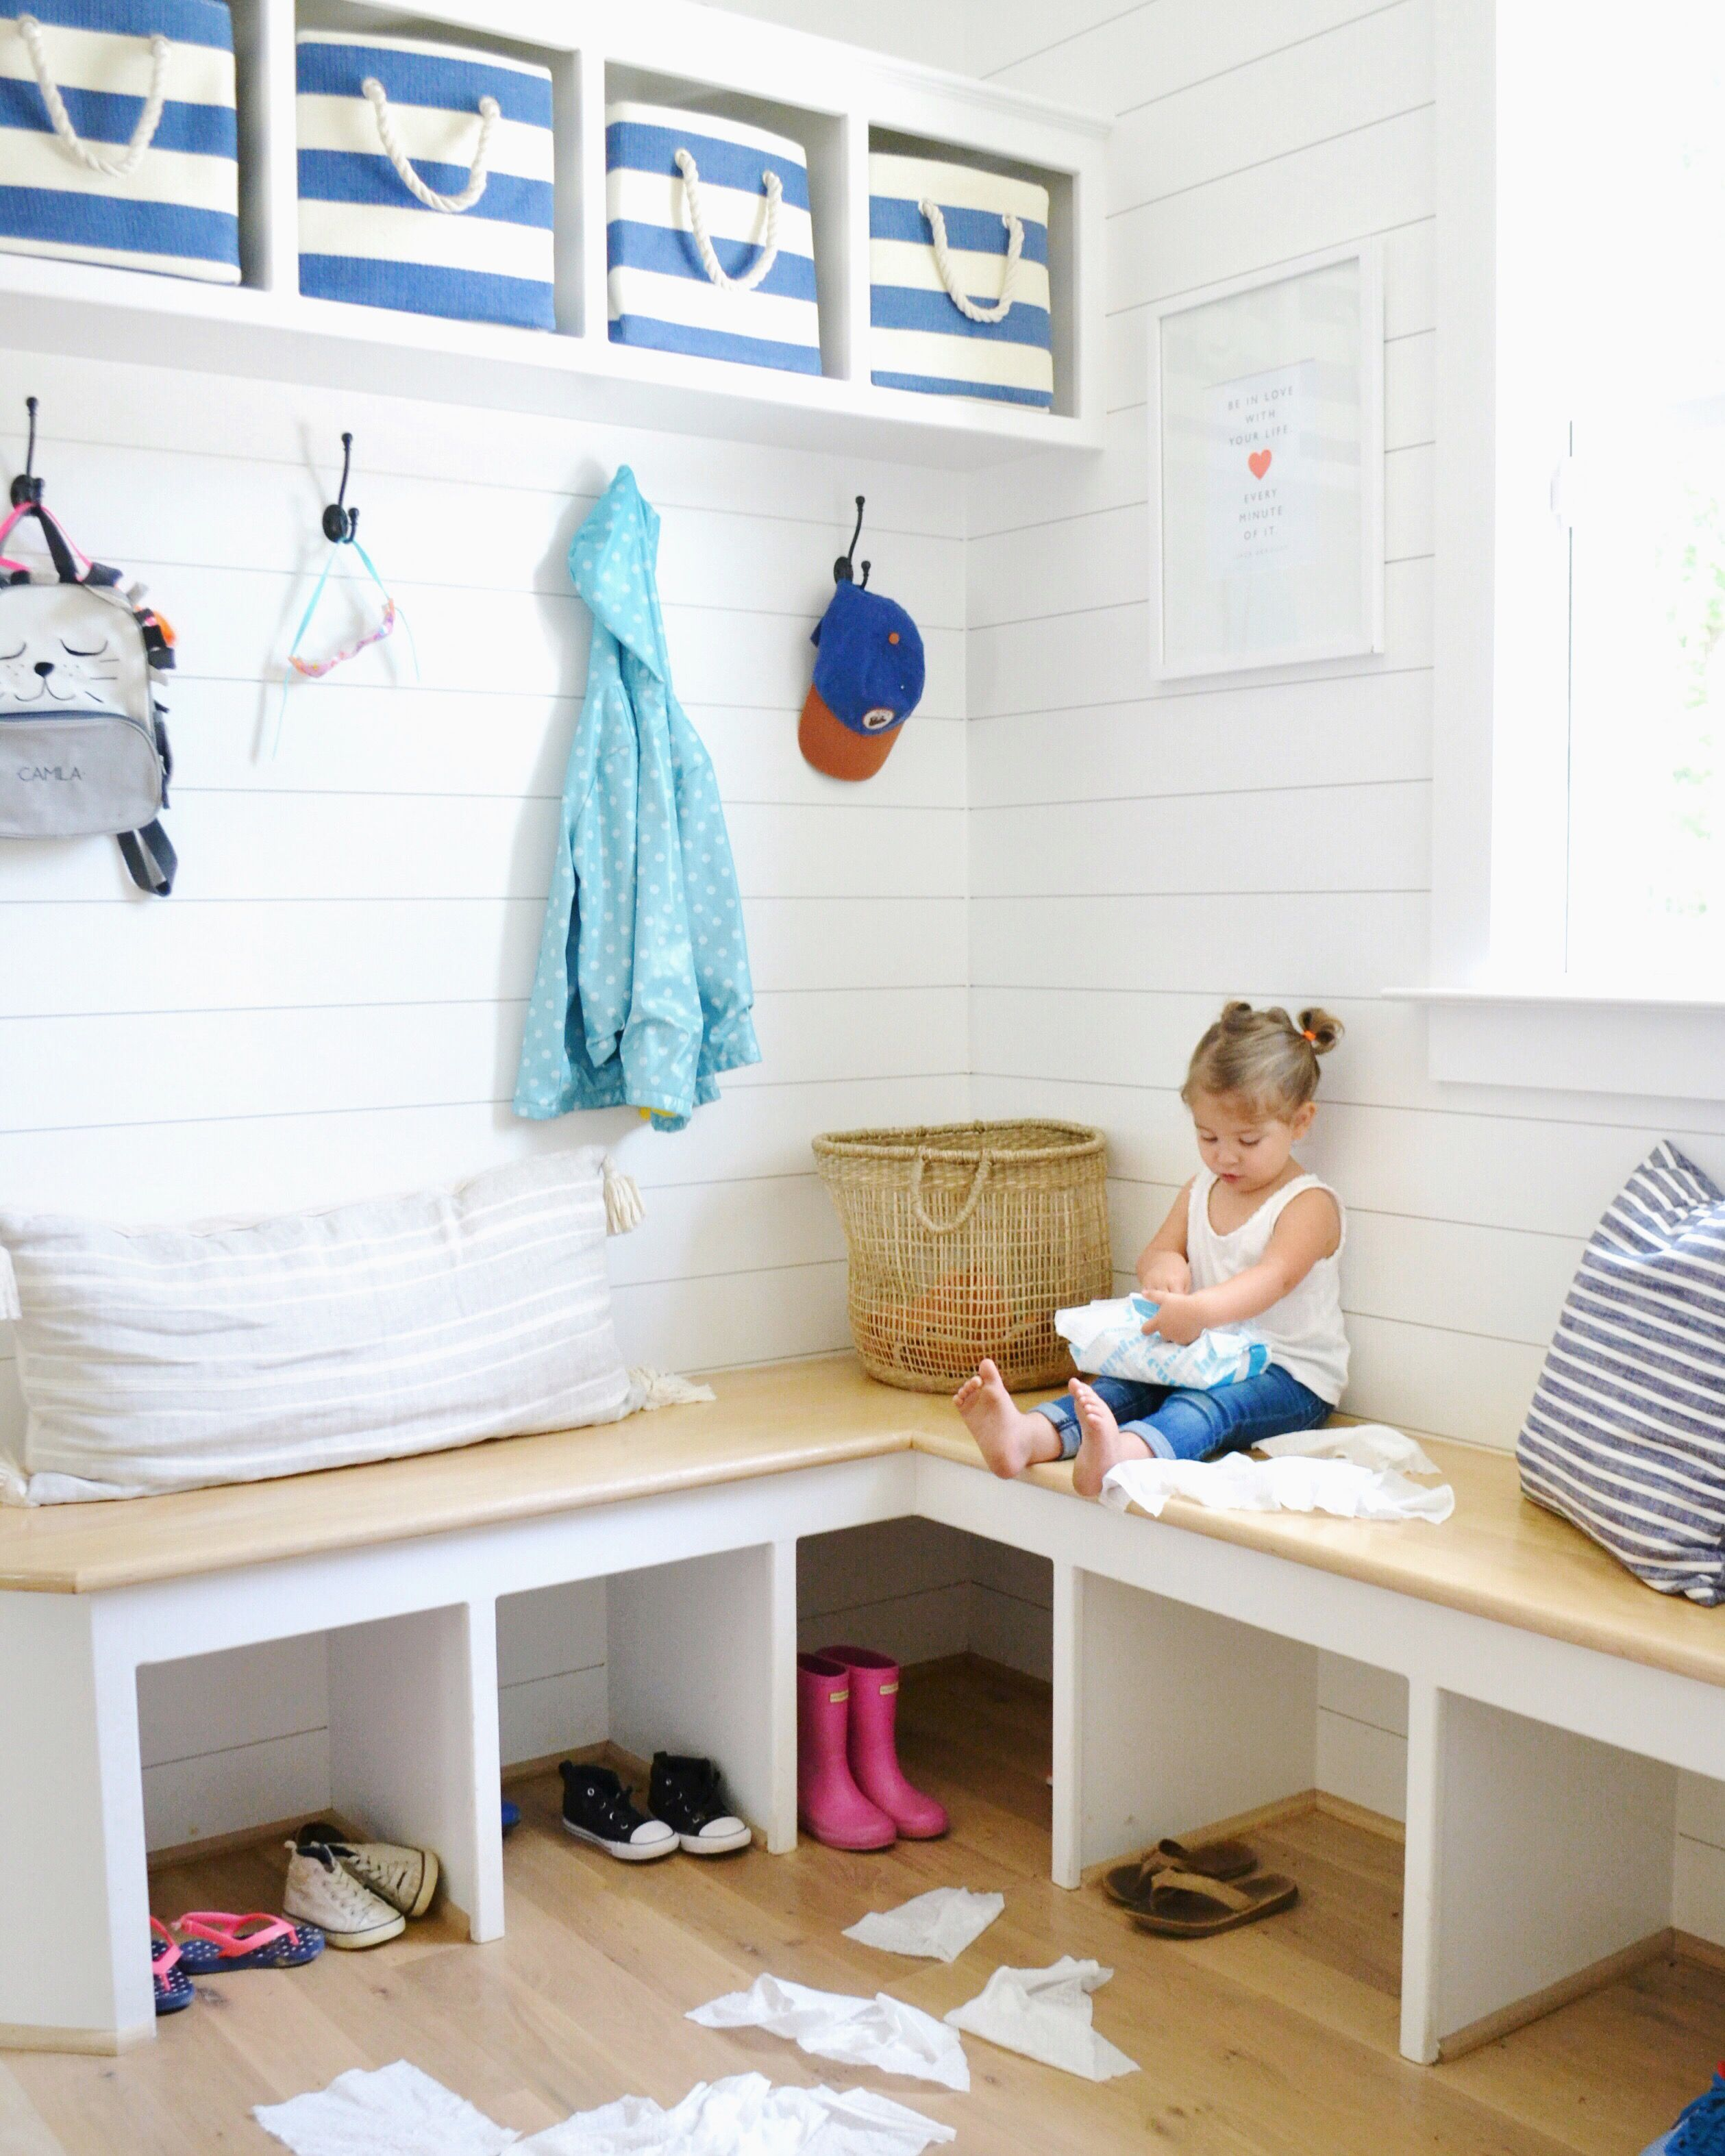 Fabulous Mudroom Ideas Diy Small Simple Organization Lockers Cubbies Dailytribune Chair Design For Home Dailytribuneorg